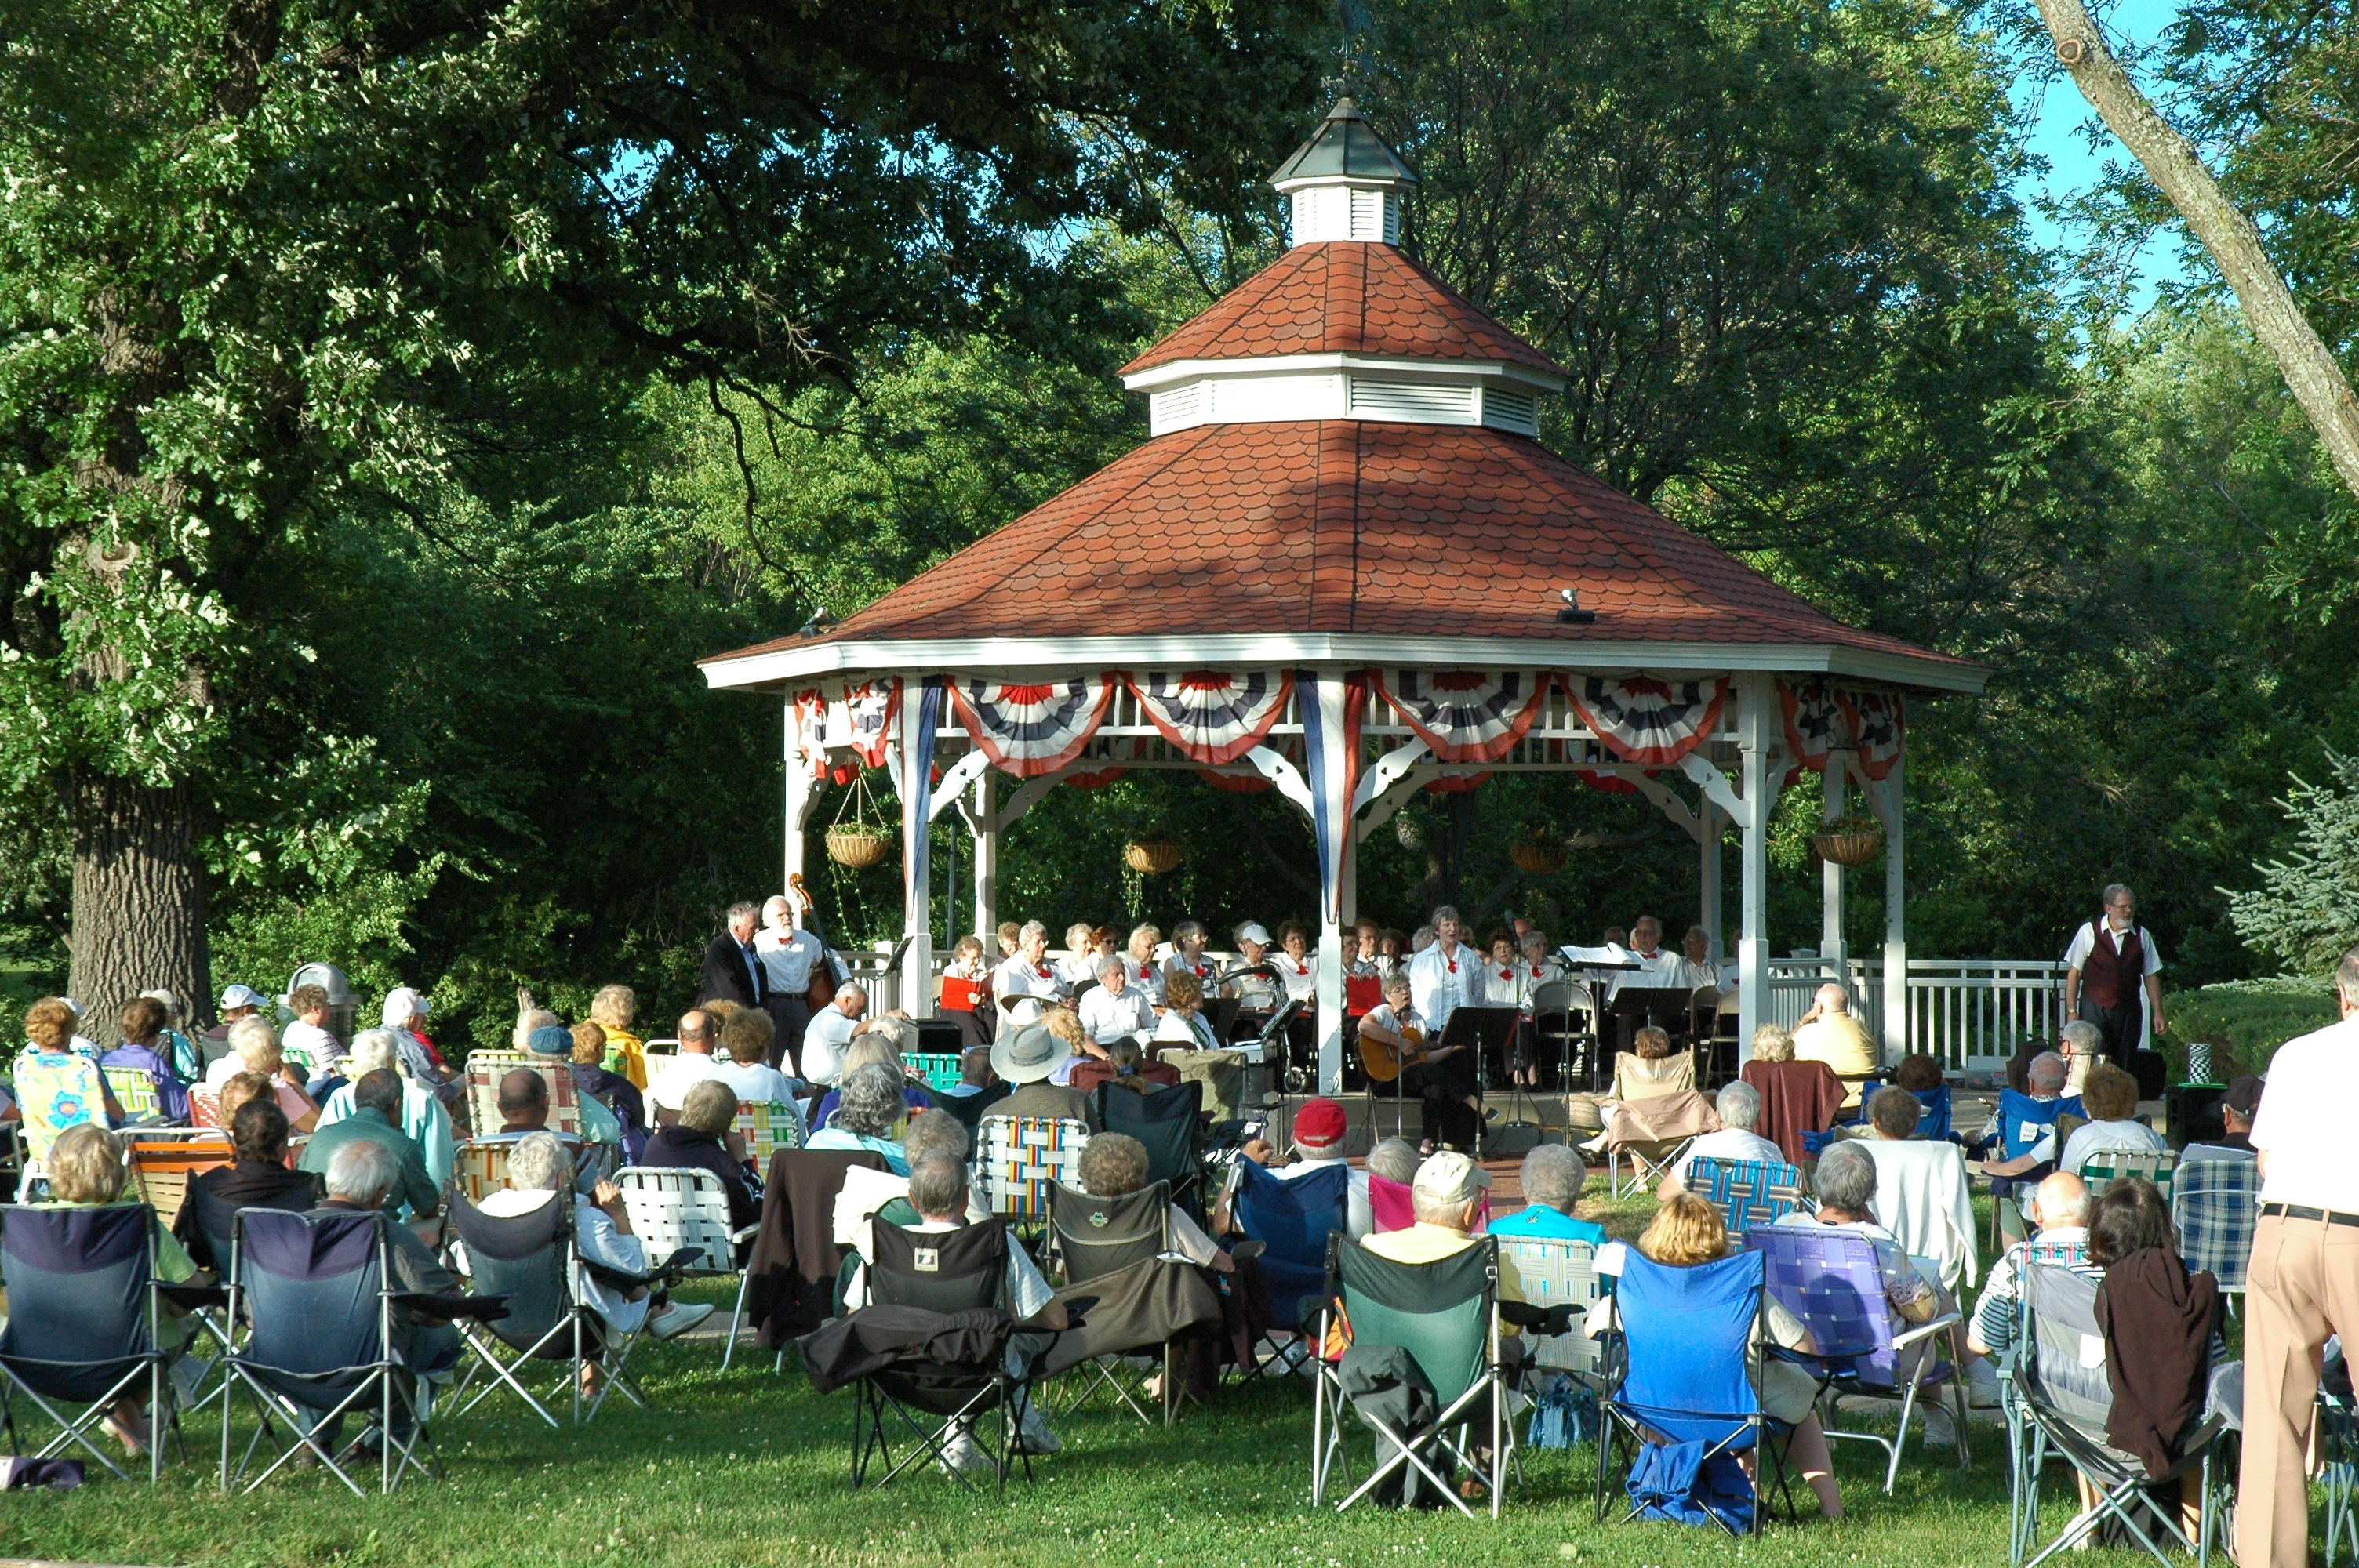 A band concert at the gazebo in central historic Greendale.